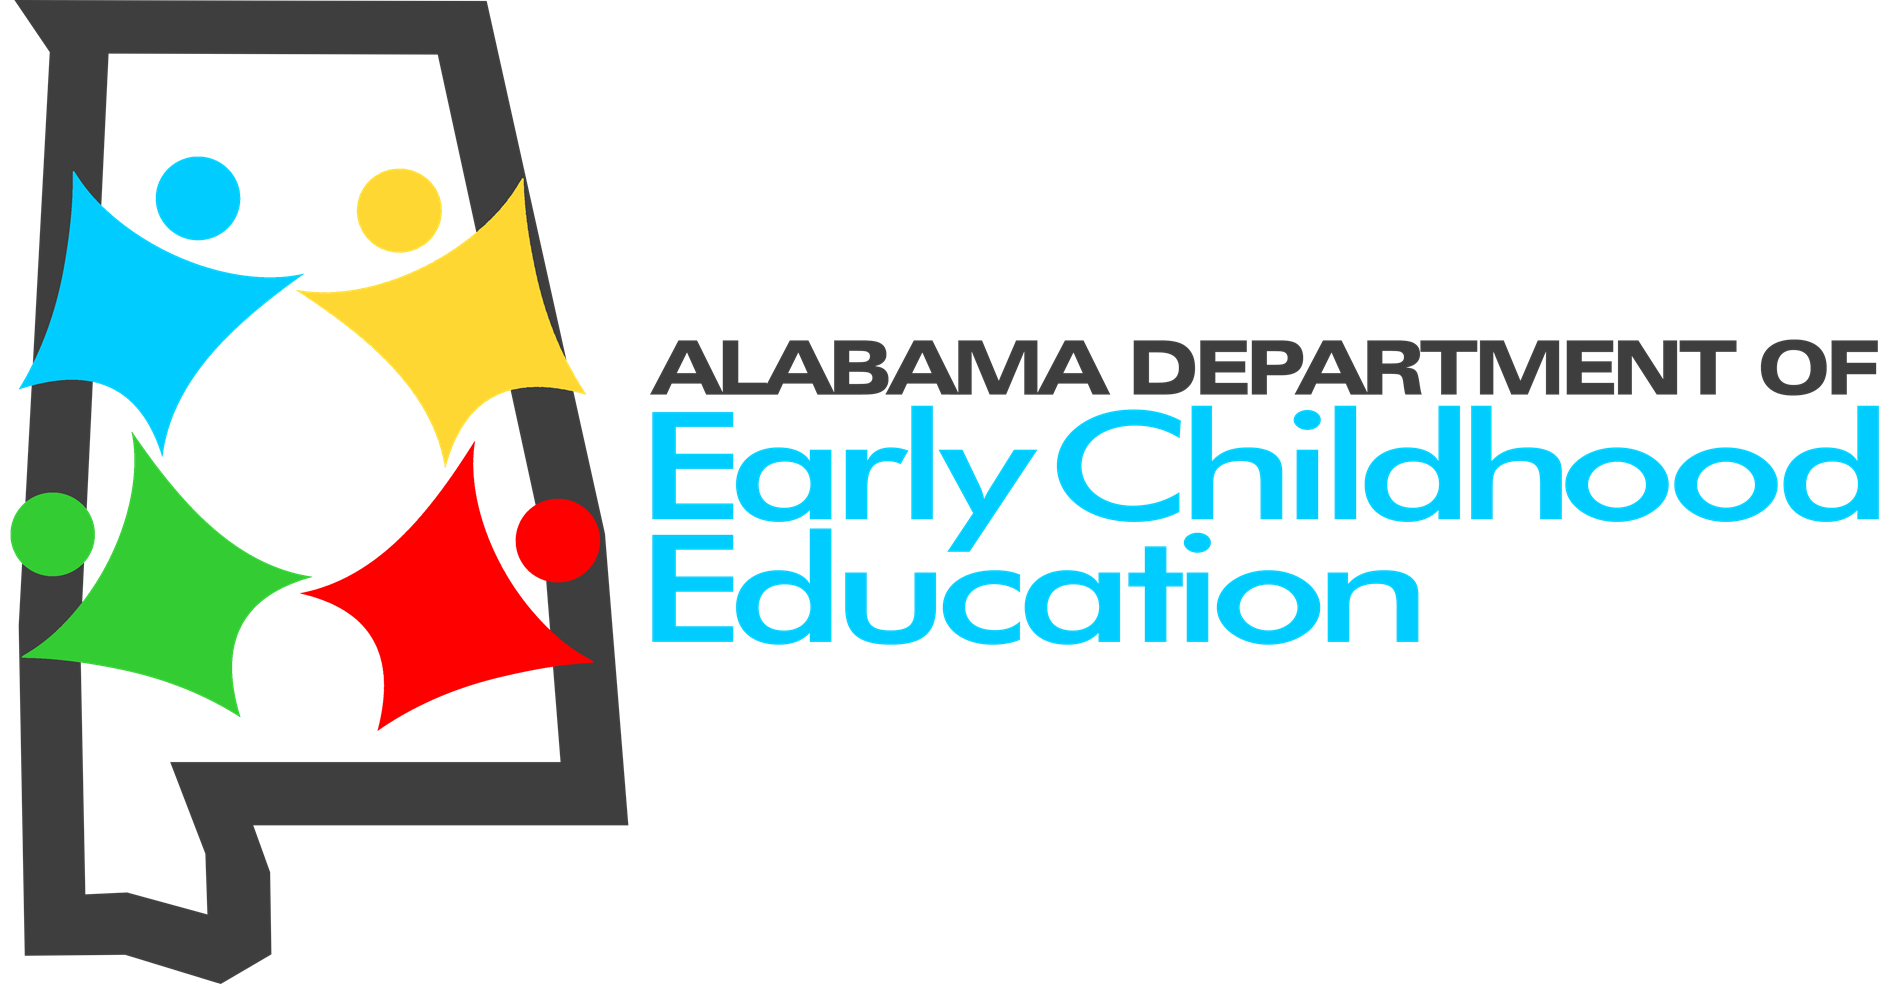 Alabama Department of Early Childhood Education Logo